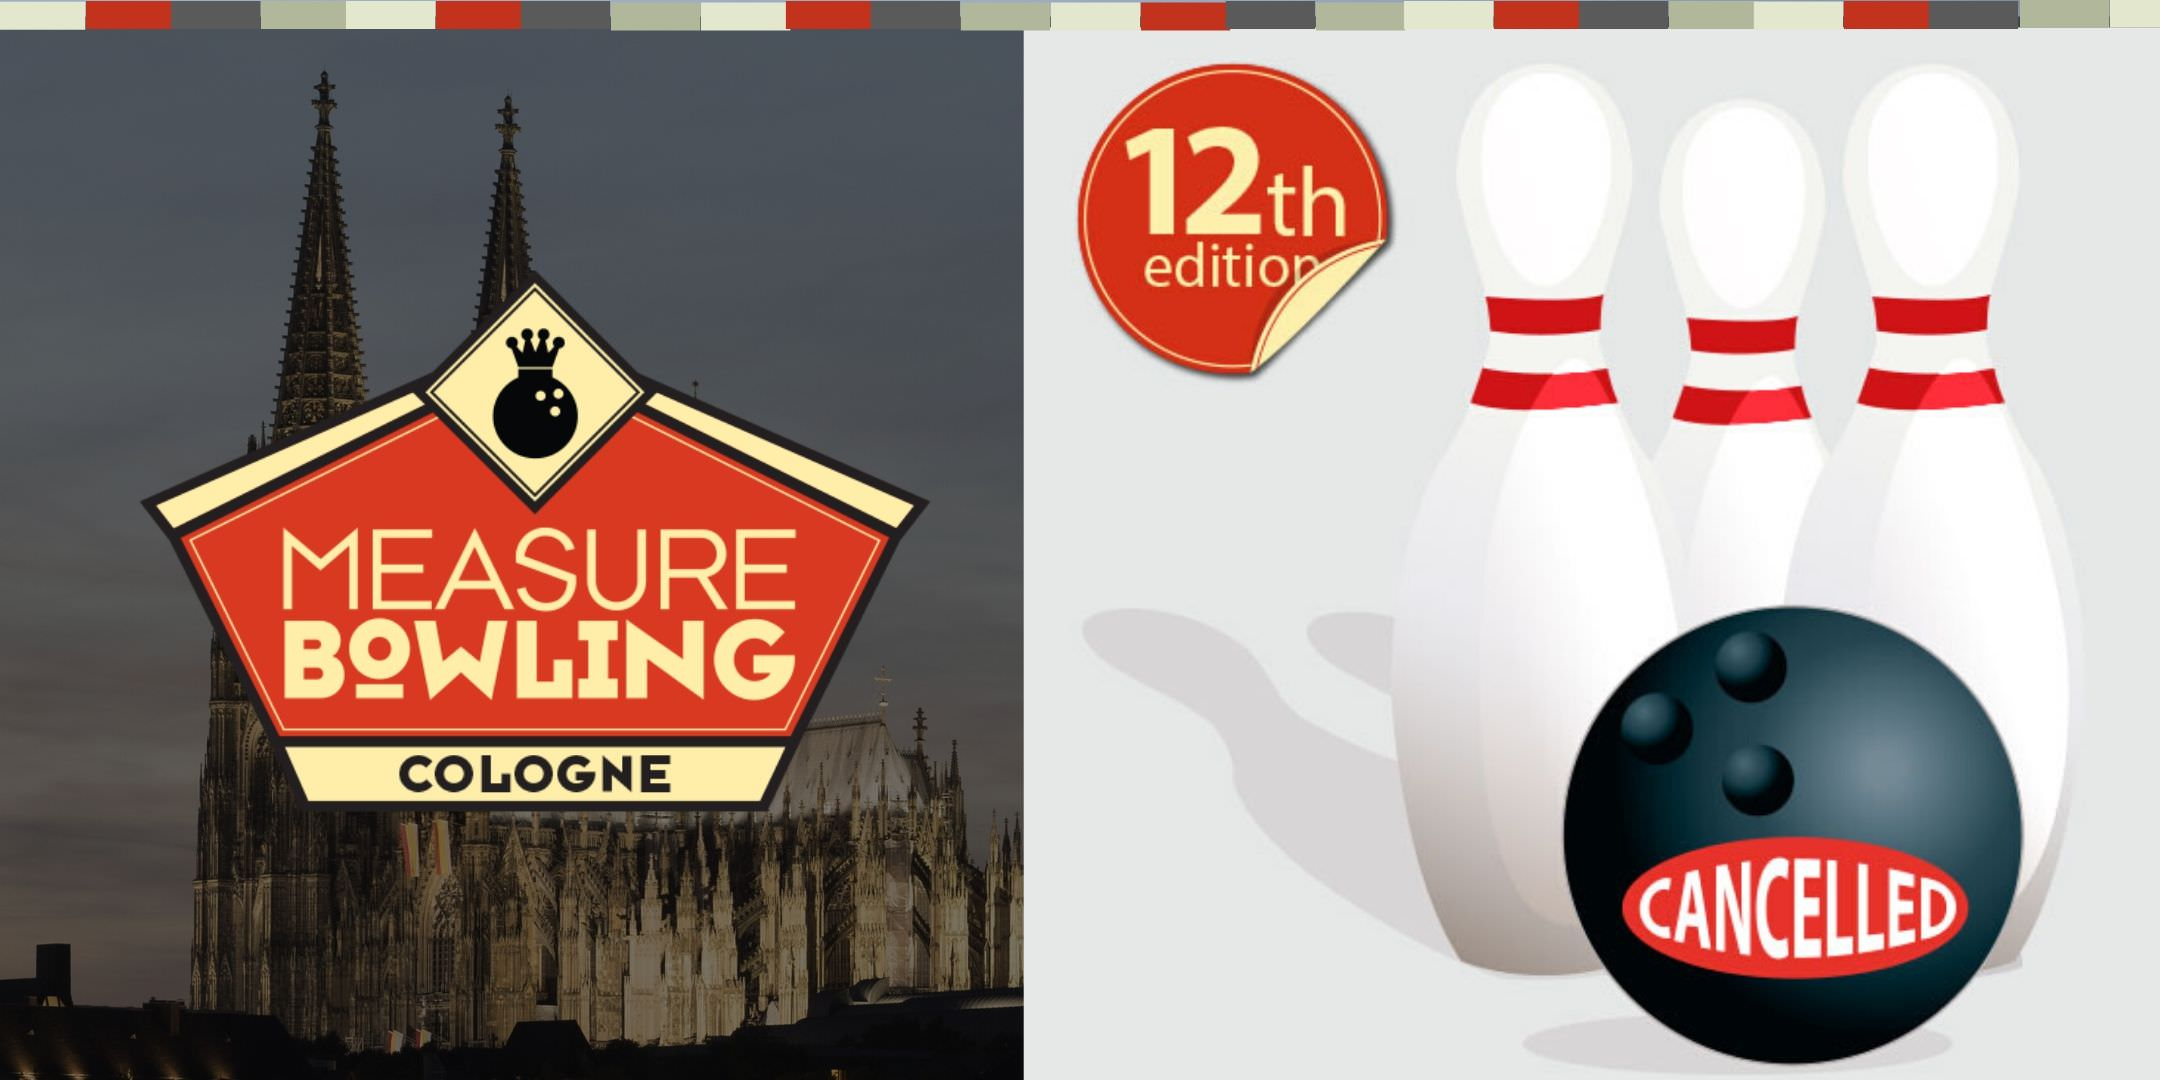 Measure Bowling Cologne 2020 cancelled